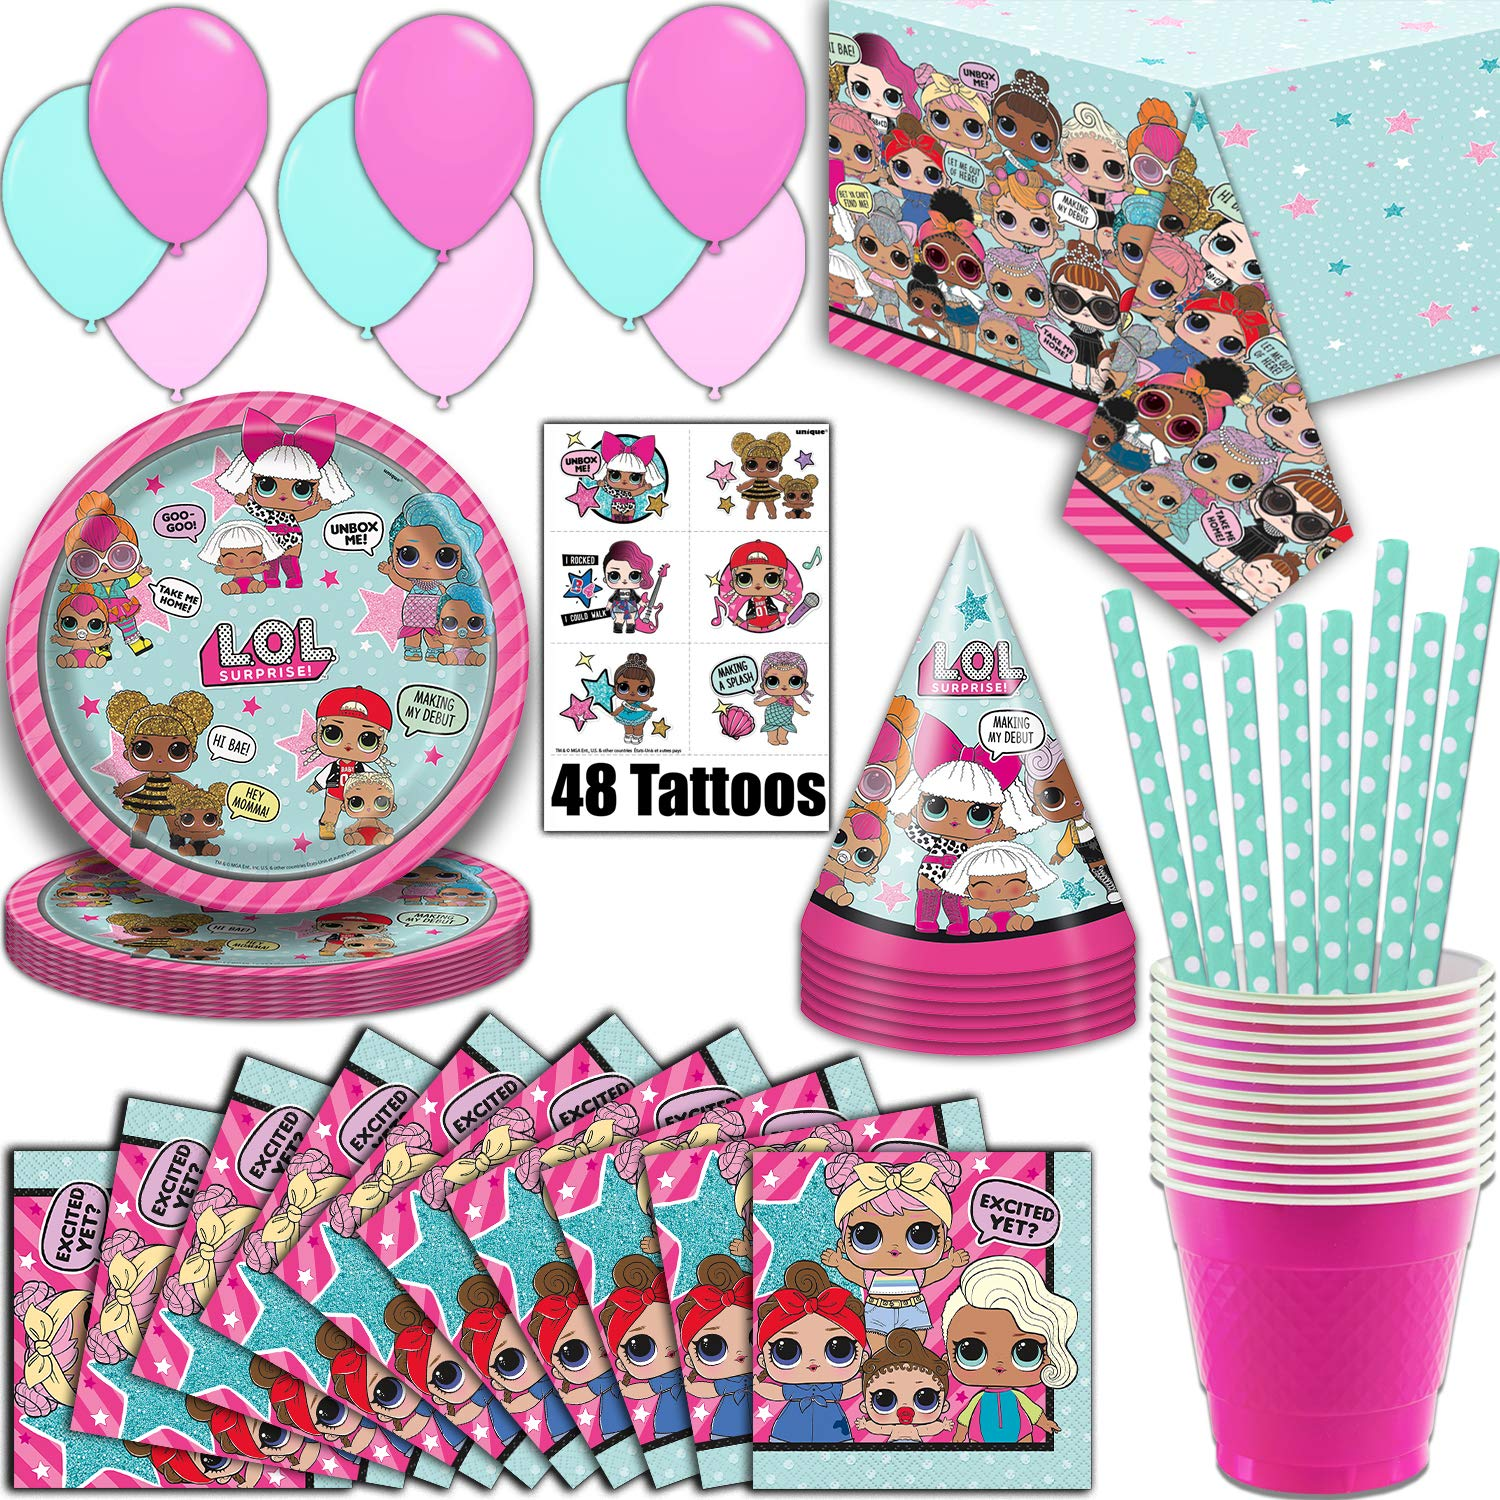 LOL Suprise Party Supplies, Serves 16 - Plates, Napkins, Tablecloth, Cups, Straws, Balloons, Tattoos, Birthday Hats - Full Tableware, Decorations, Favors for L.O.L Collectors by HeroFiber (Image #6)